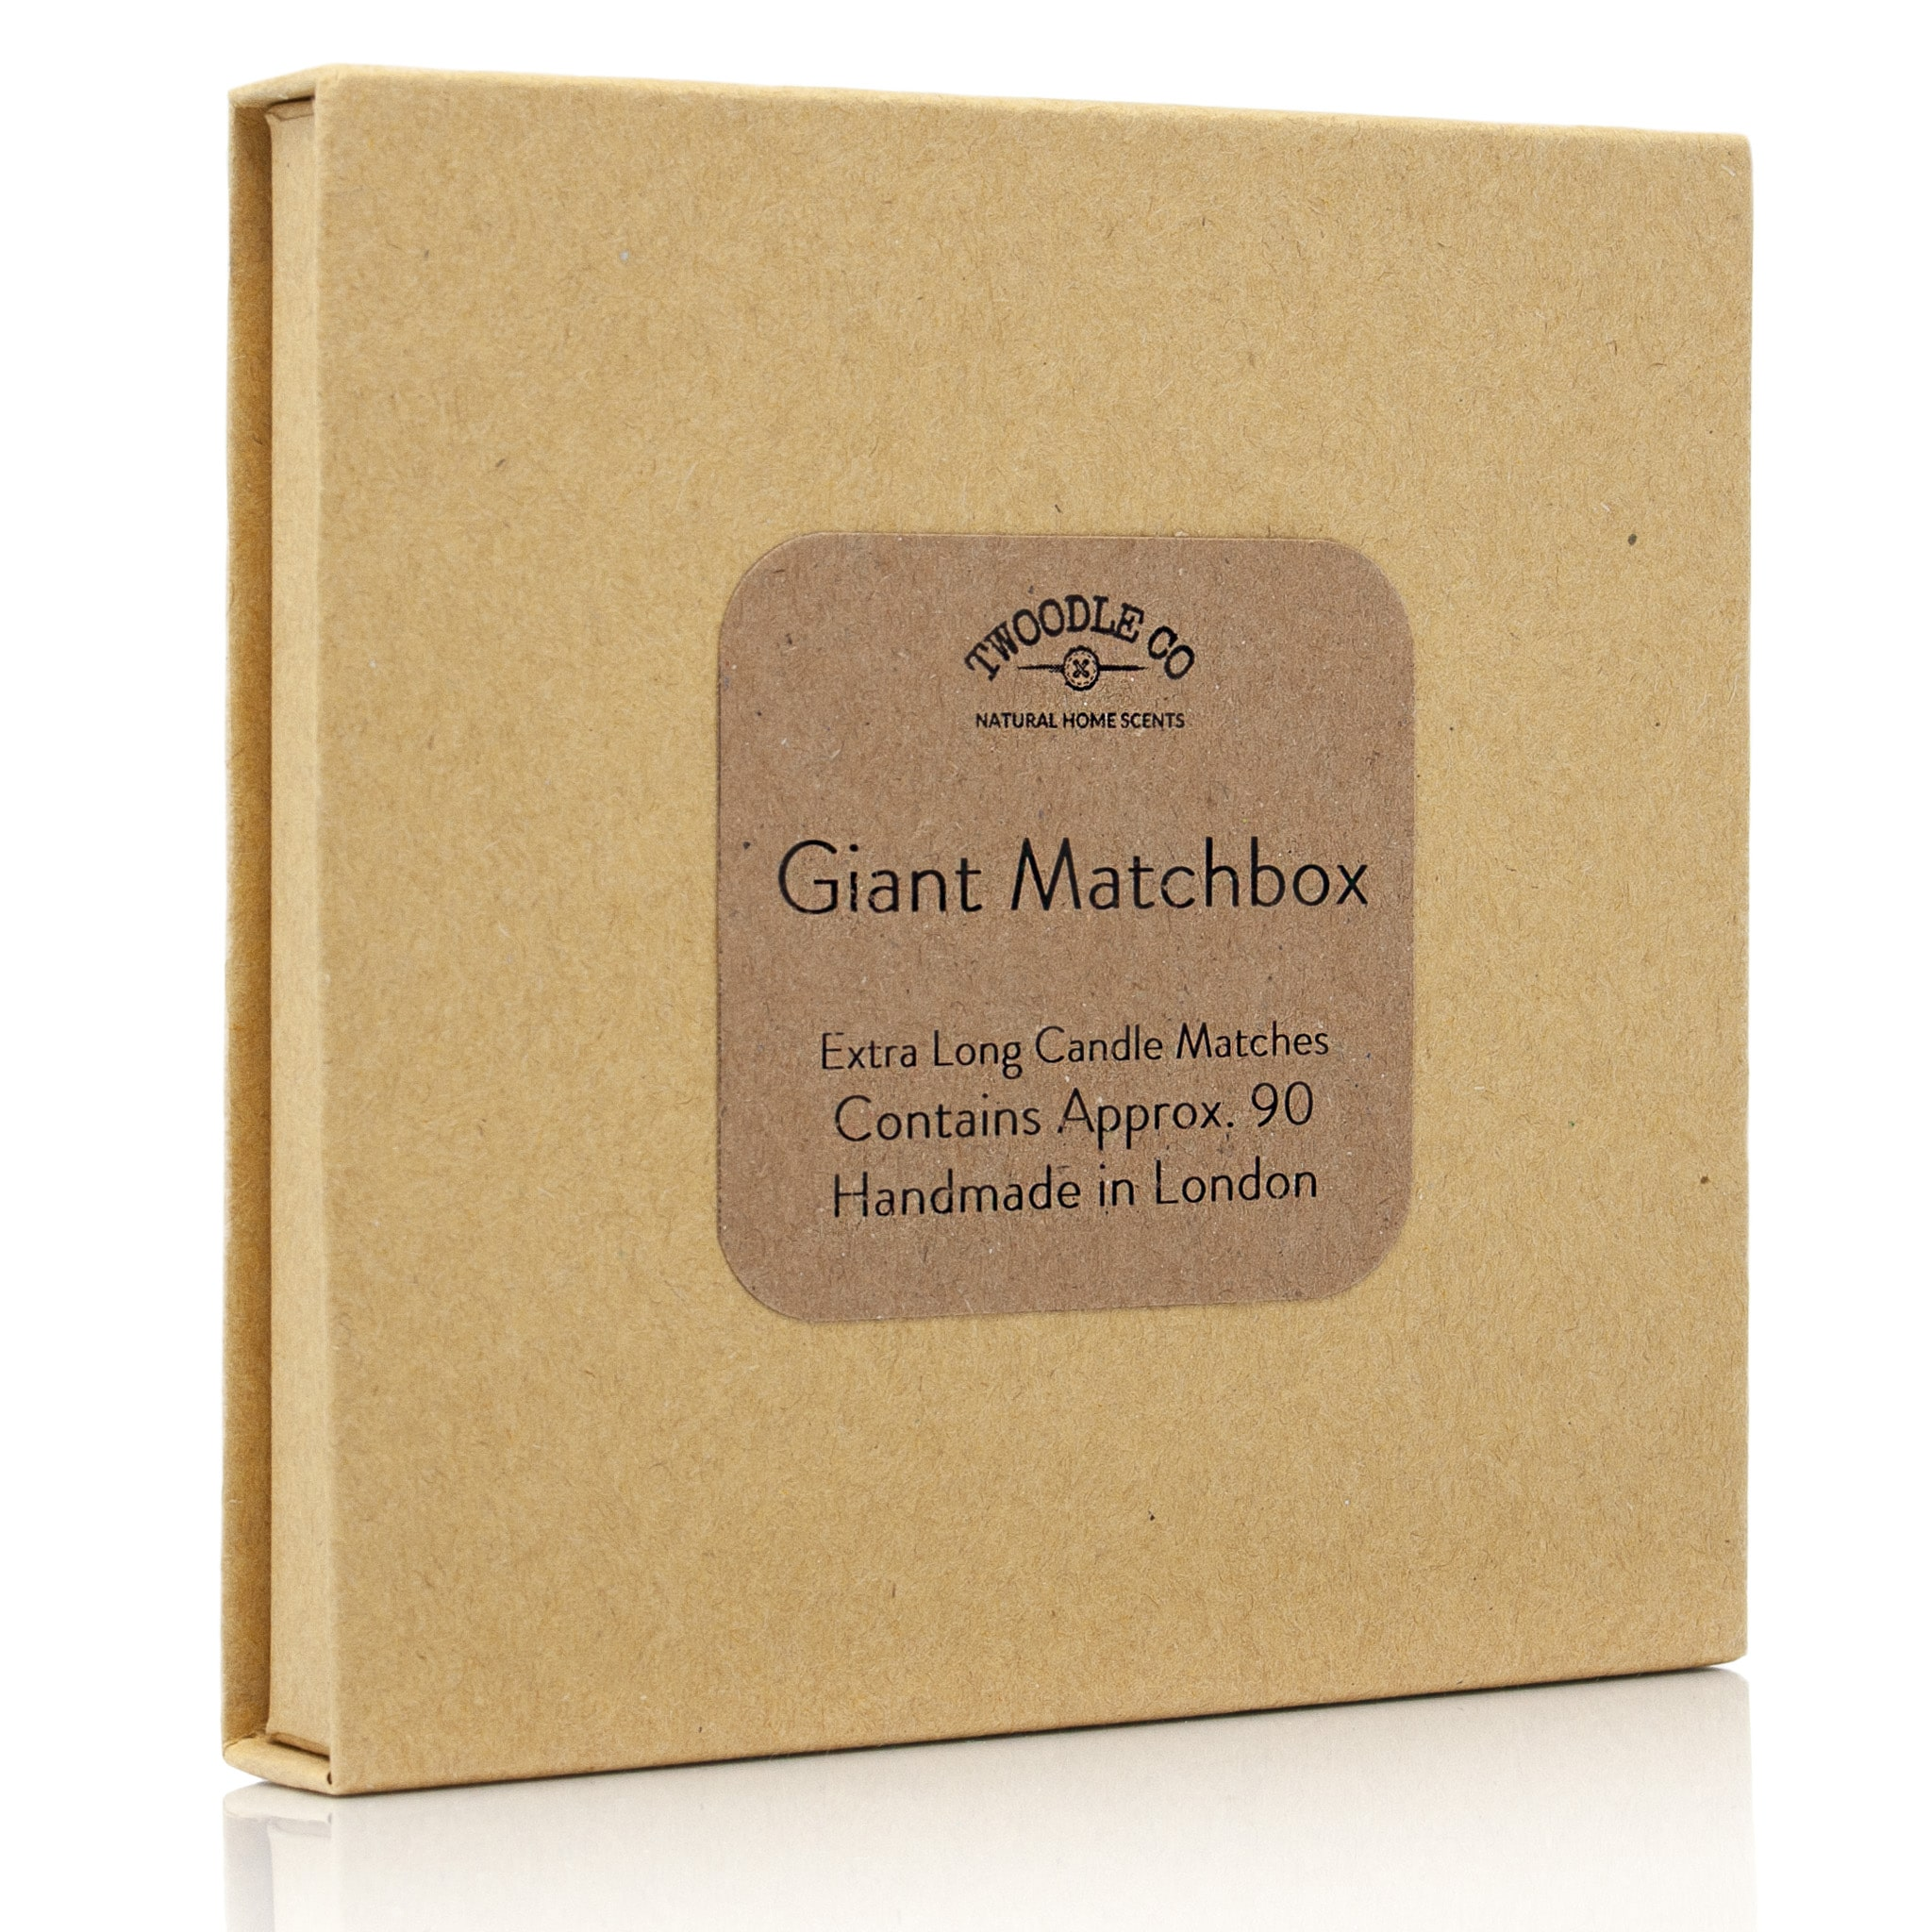 Giant Matchbox | Extra Long Candle Matches | Twoodle Co